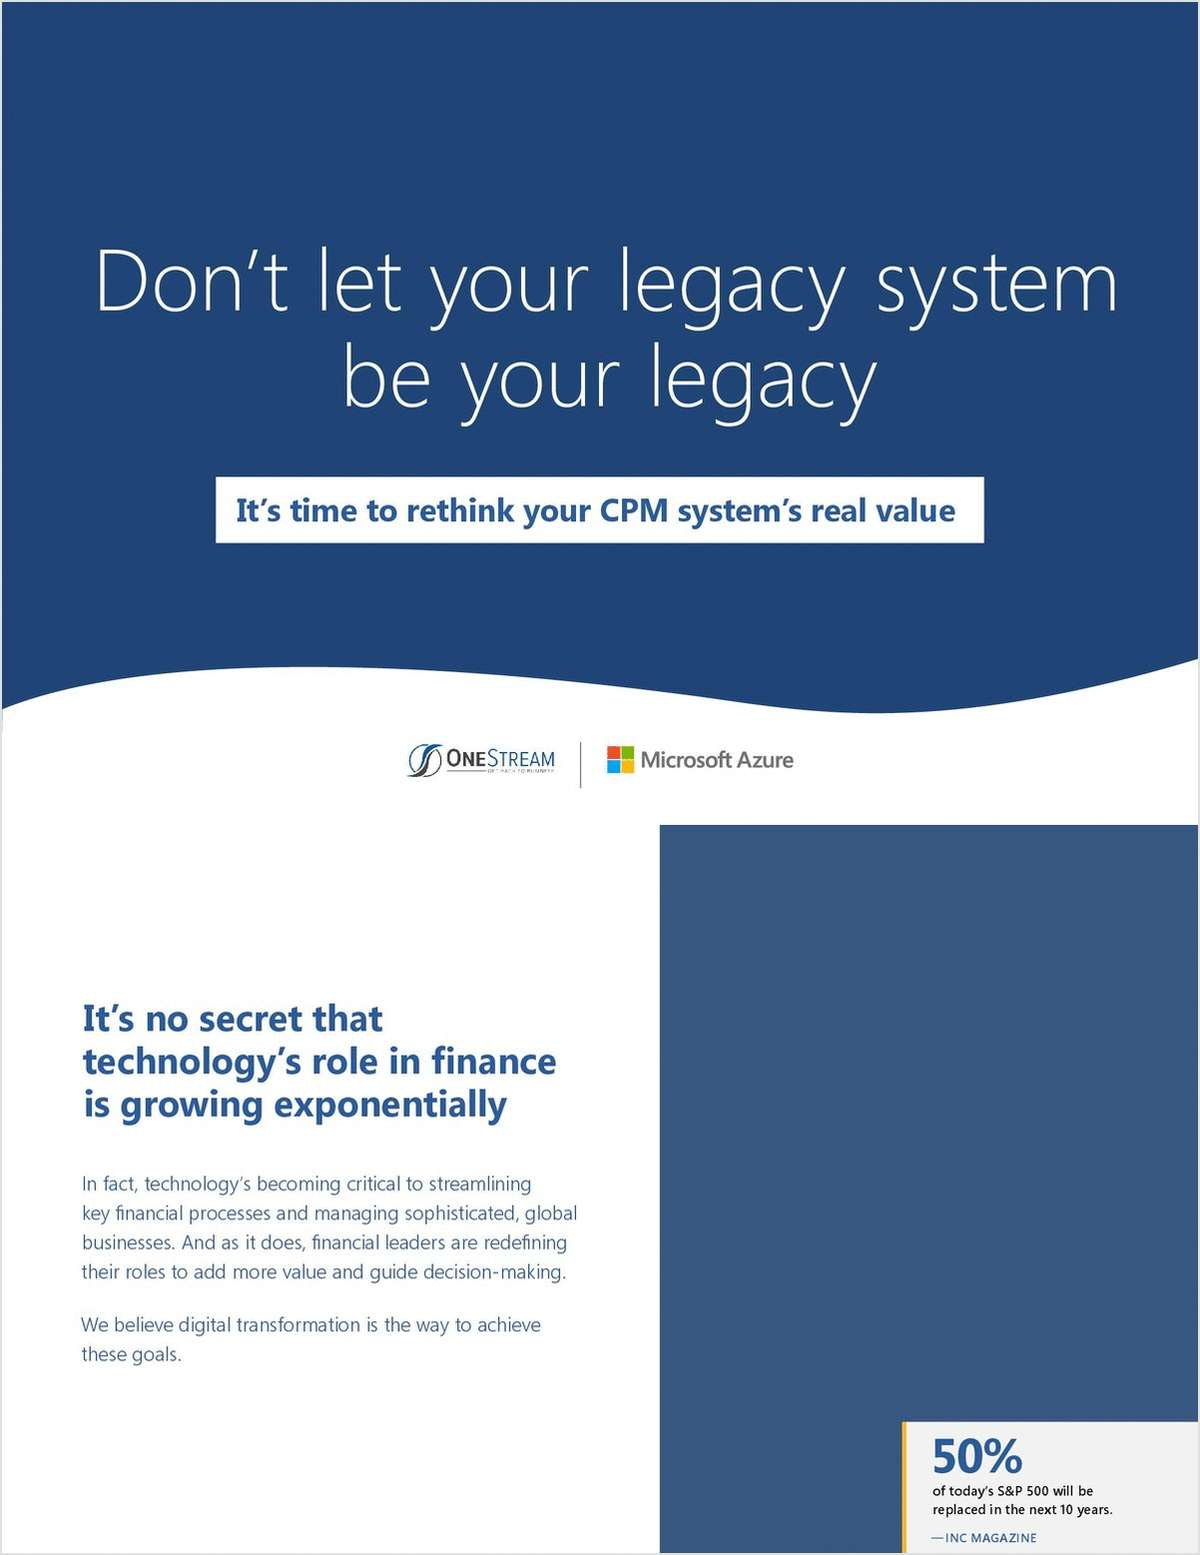 Don't Let Your Legacy System Be Your Legacy